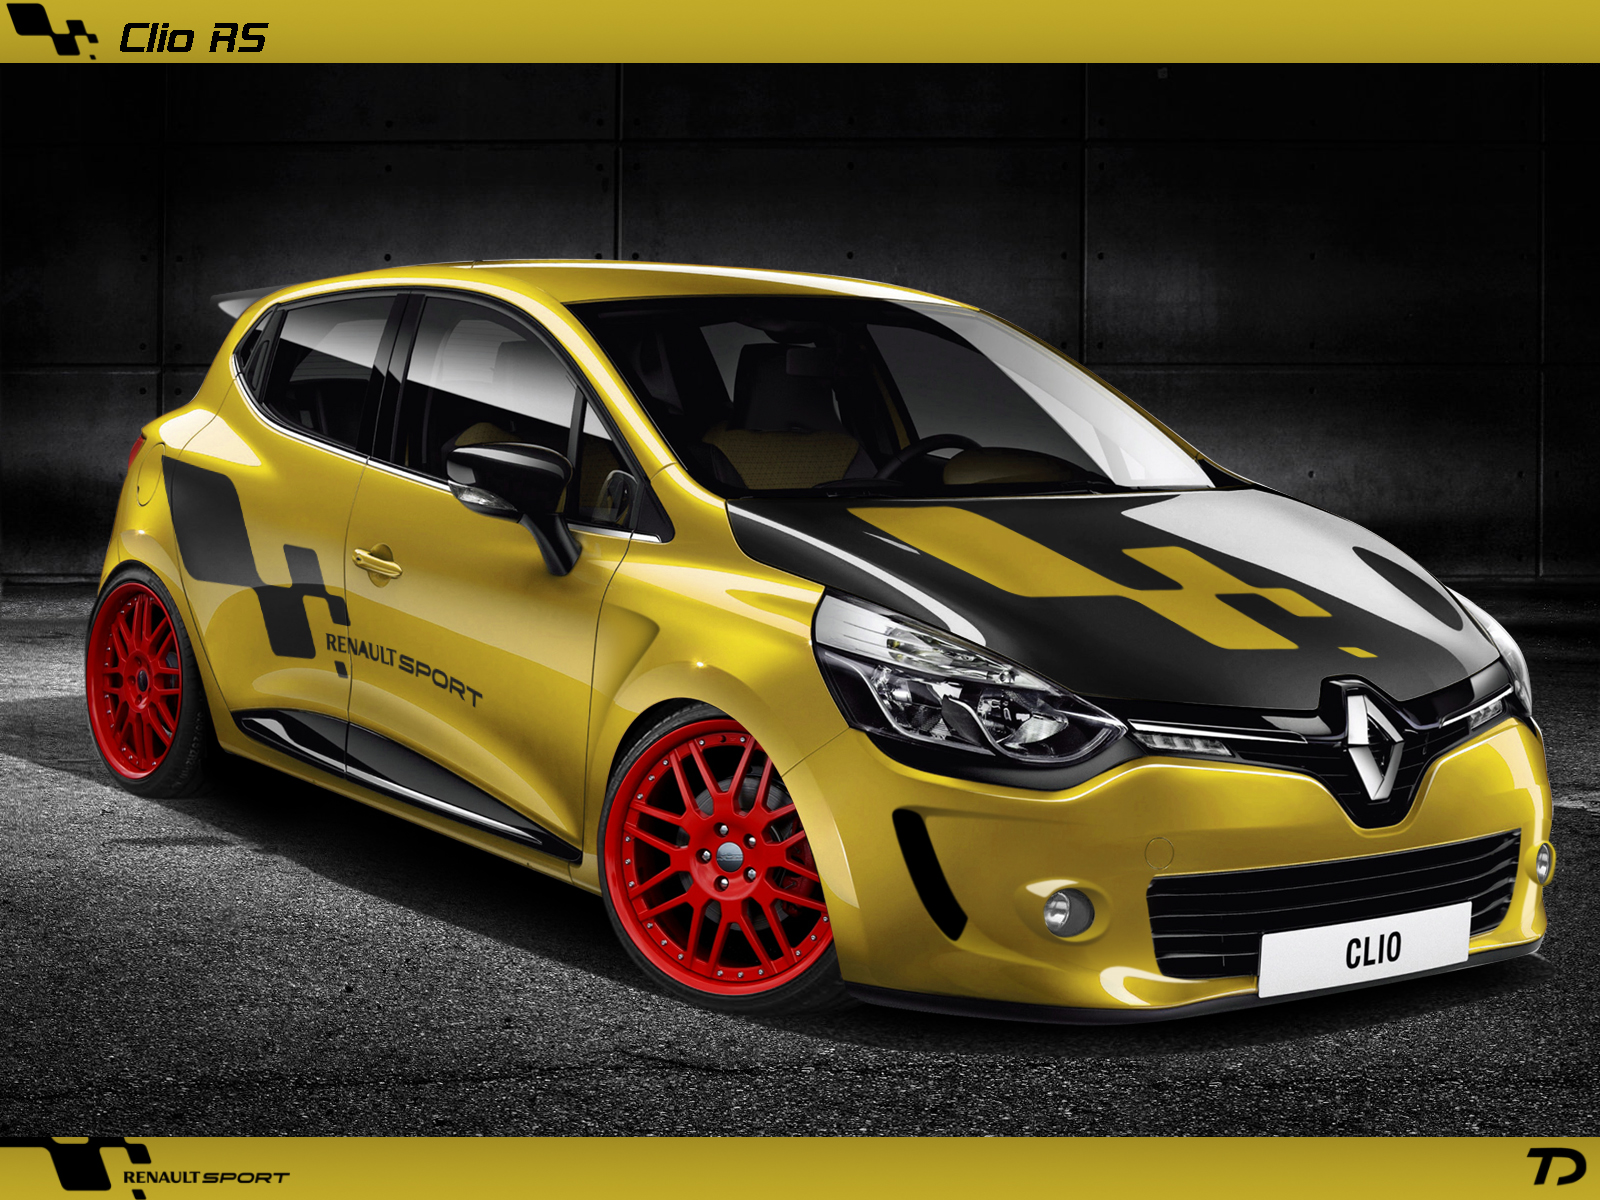 renault clio rs 2013 render by teofilodesign on deviantart. Black Bedroom Furniture Sets. Home Design Ideas